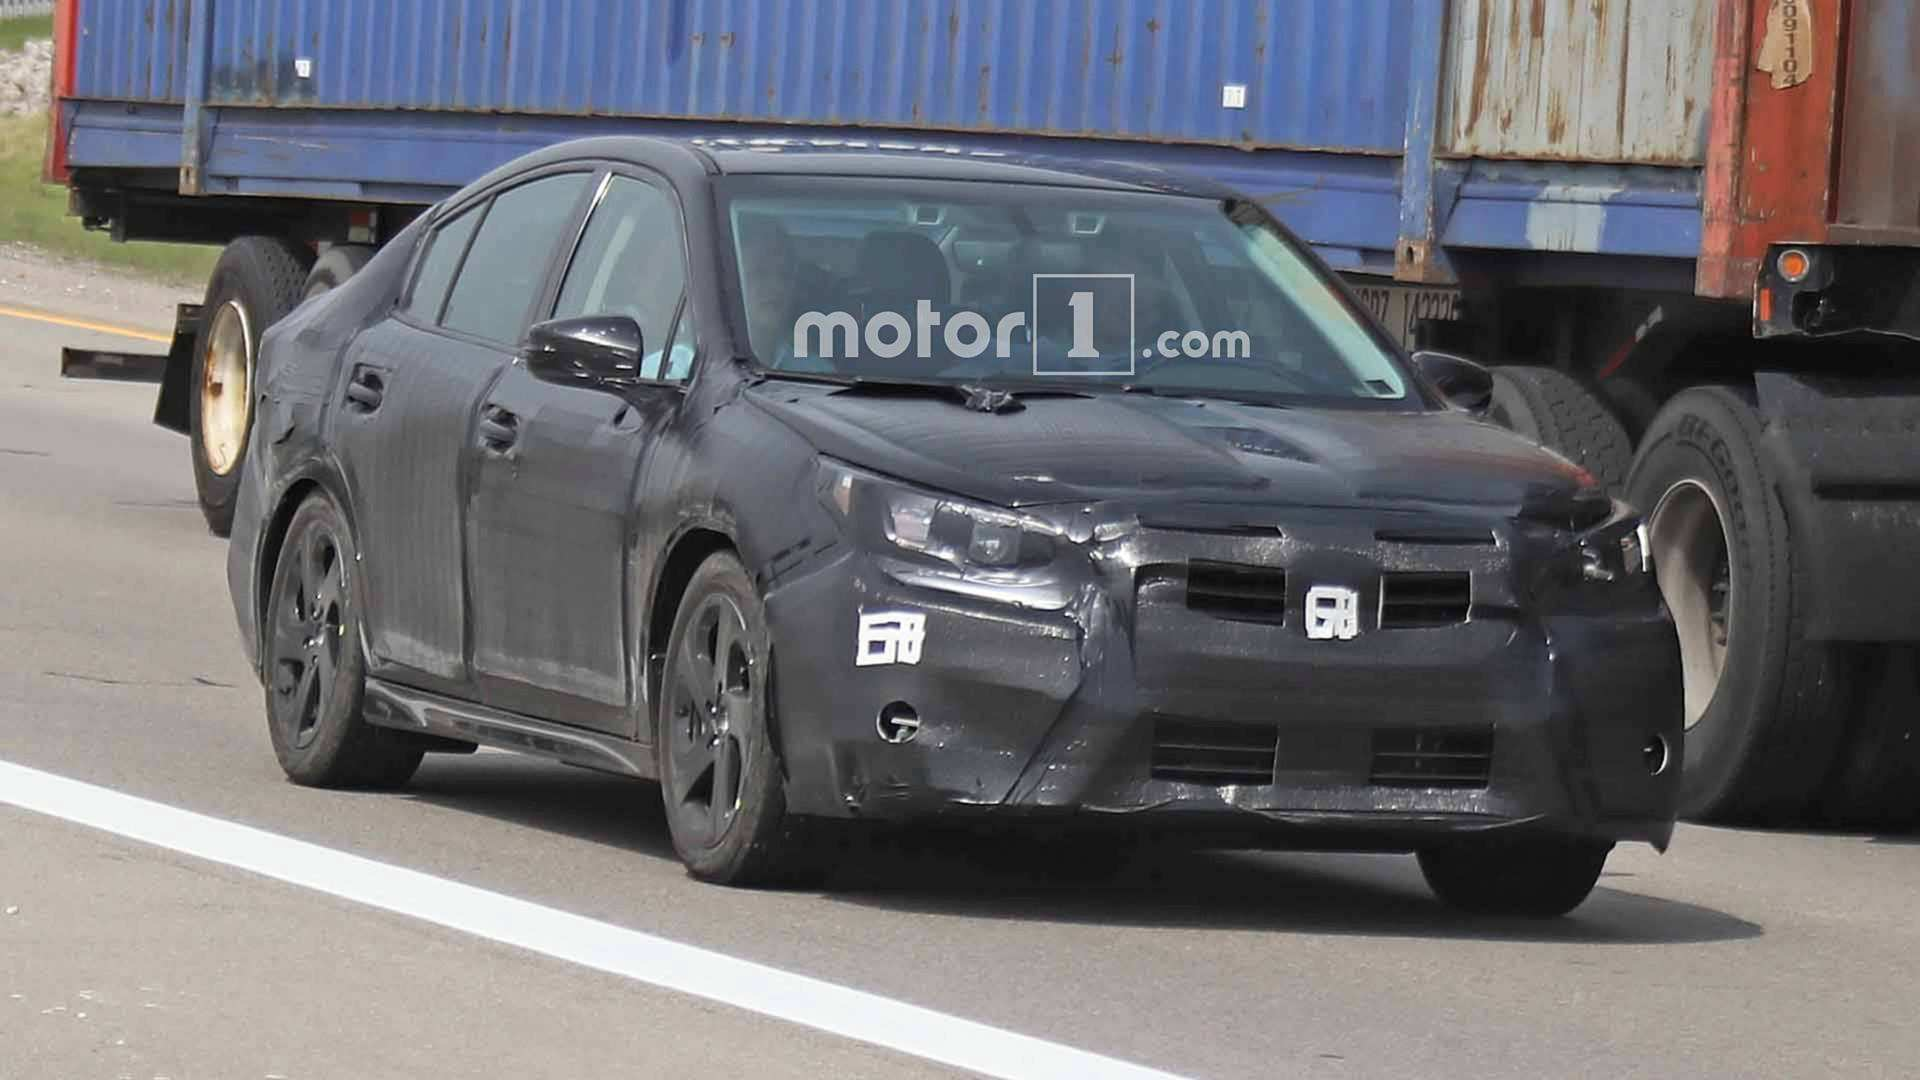 35 New 2020 Subaru Legacy Redesign Price and Review with 2020 Subaru Legacy Redesign